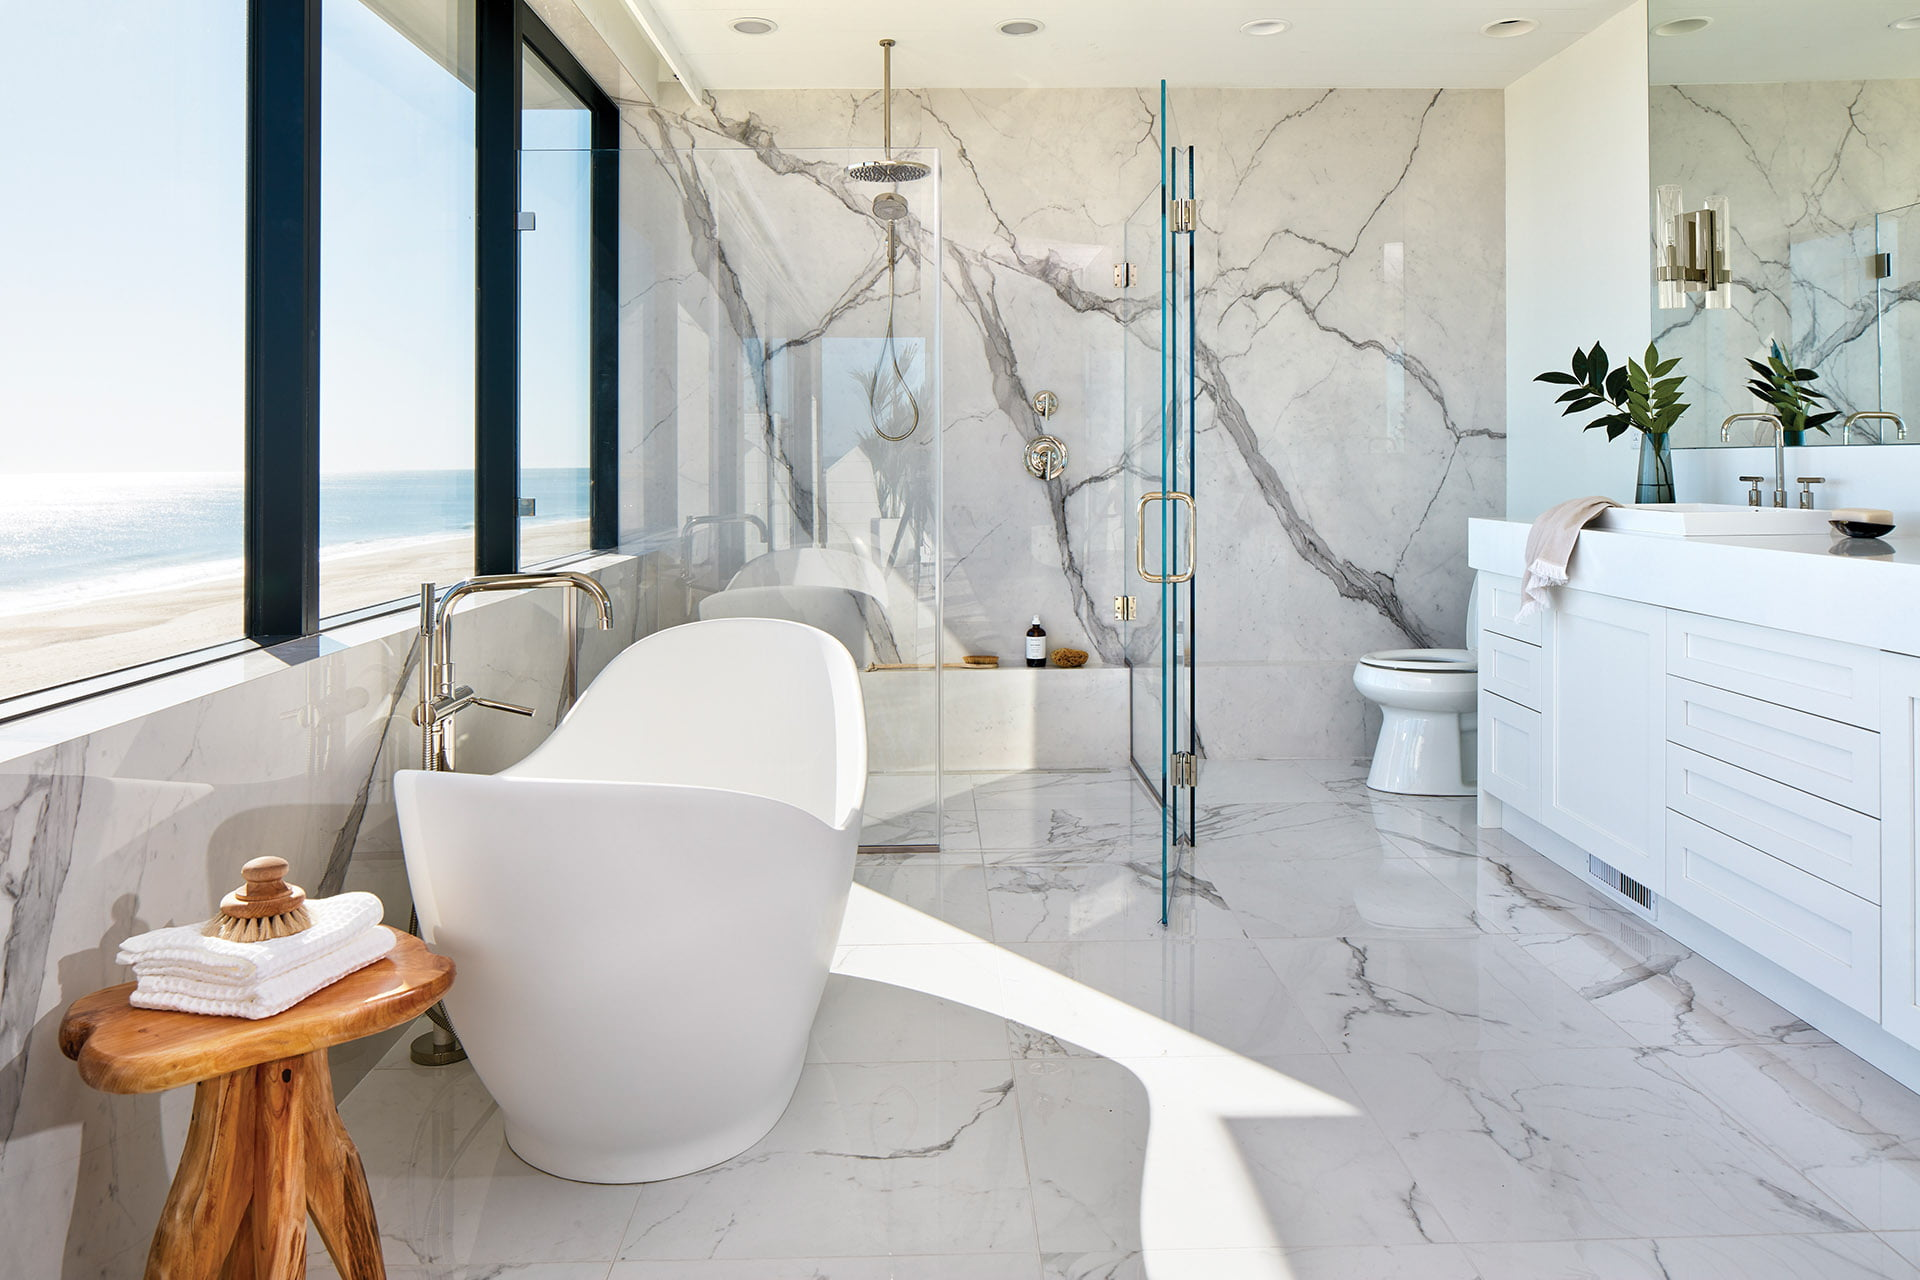 Single porcelain slabs on the shower and window walls.